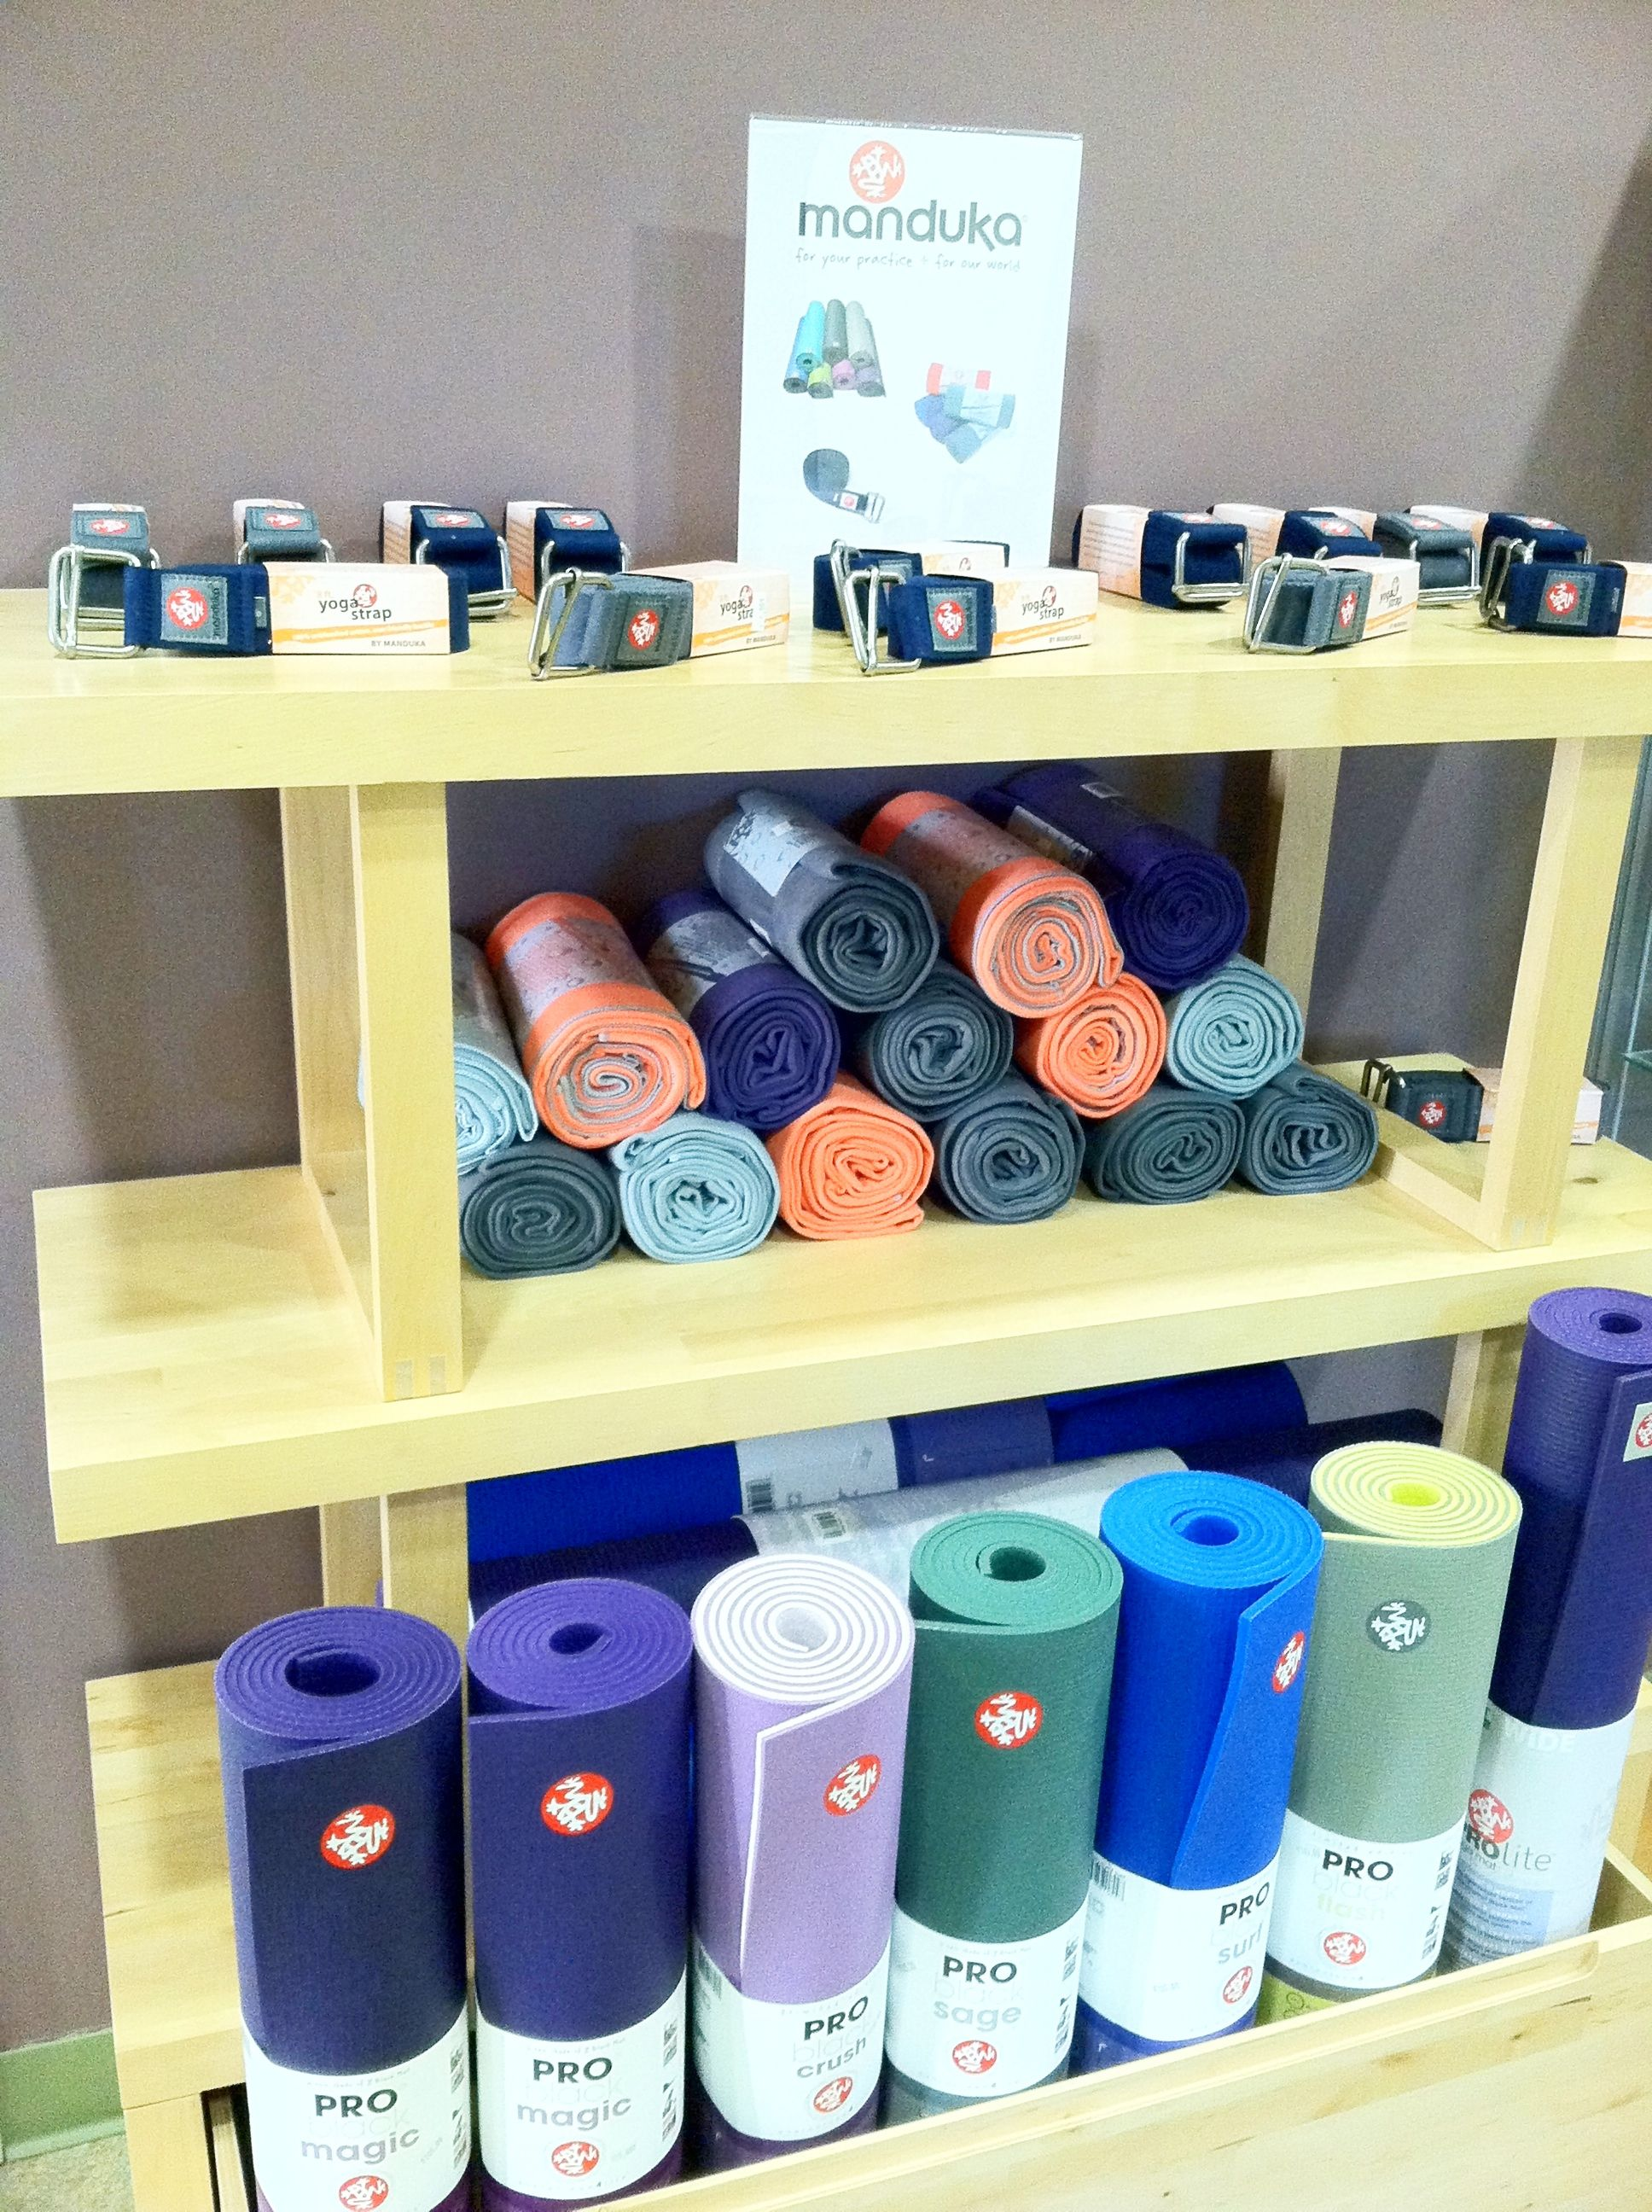 mat manduka upward raincheck friendly product yoga dog eko eco retouched